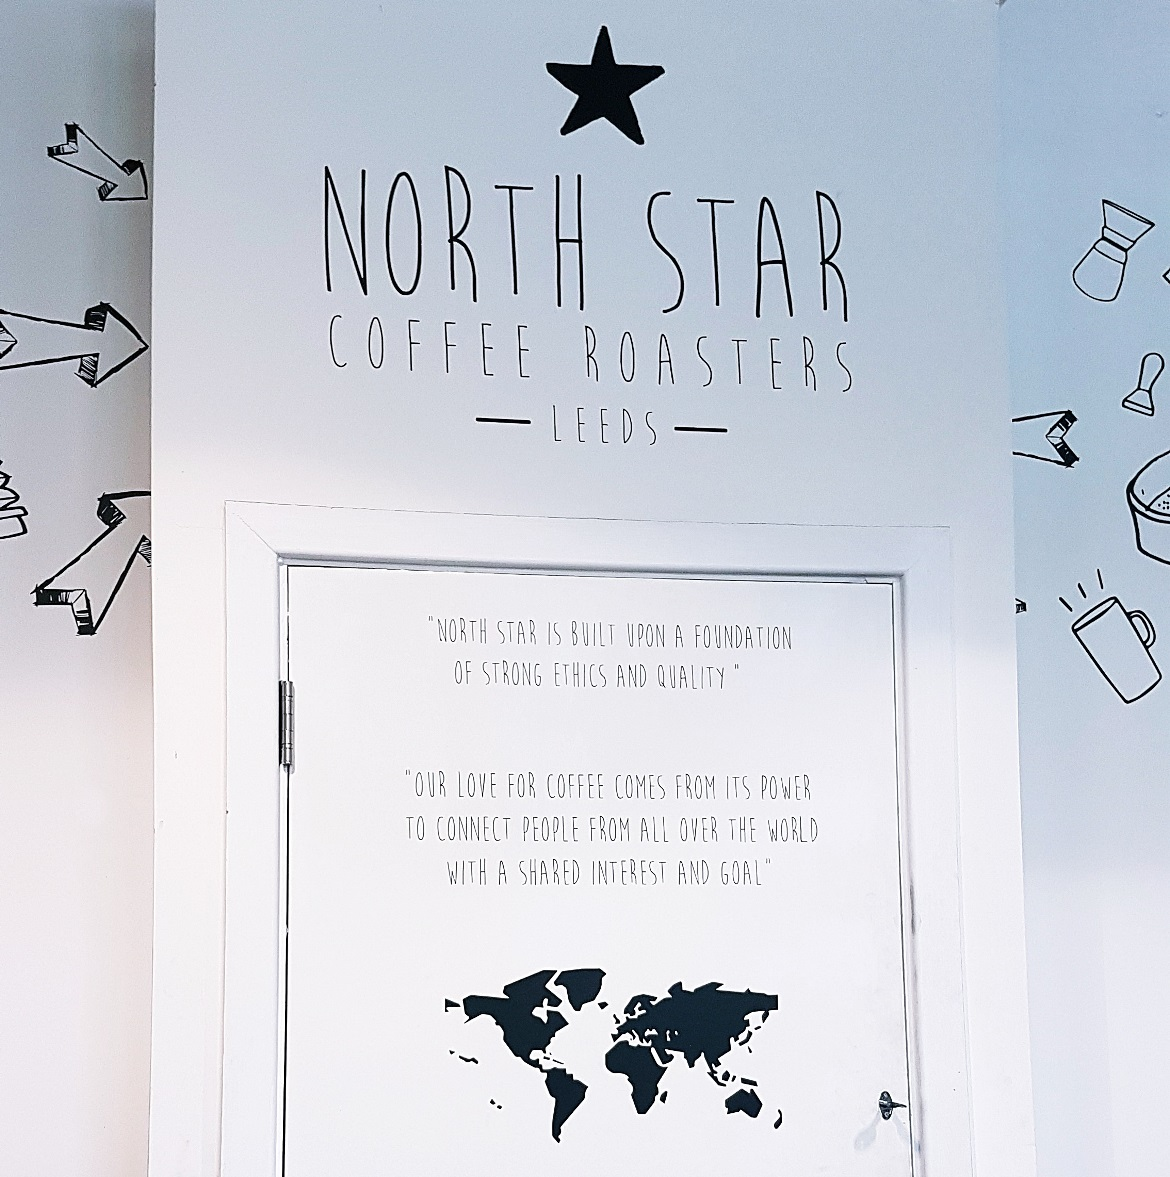 Decor on the wall of North Star Coffee Roastery - Review of North Star Coffee Shop by BeckyBecky Blogs